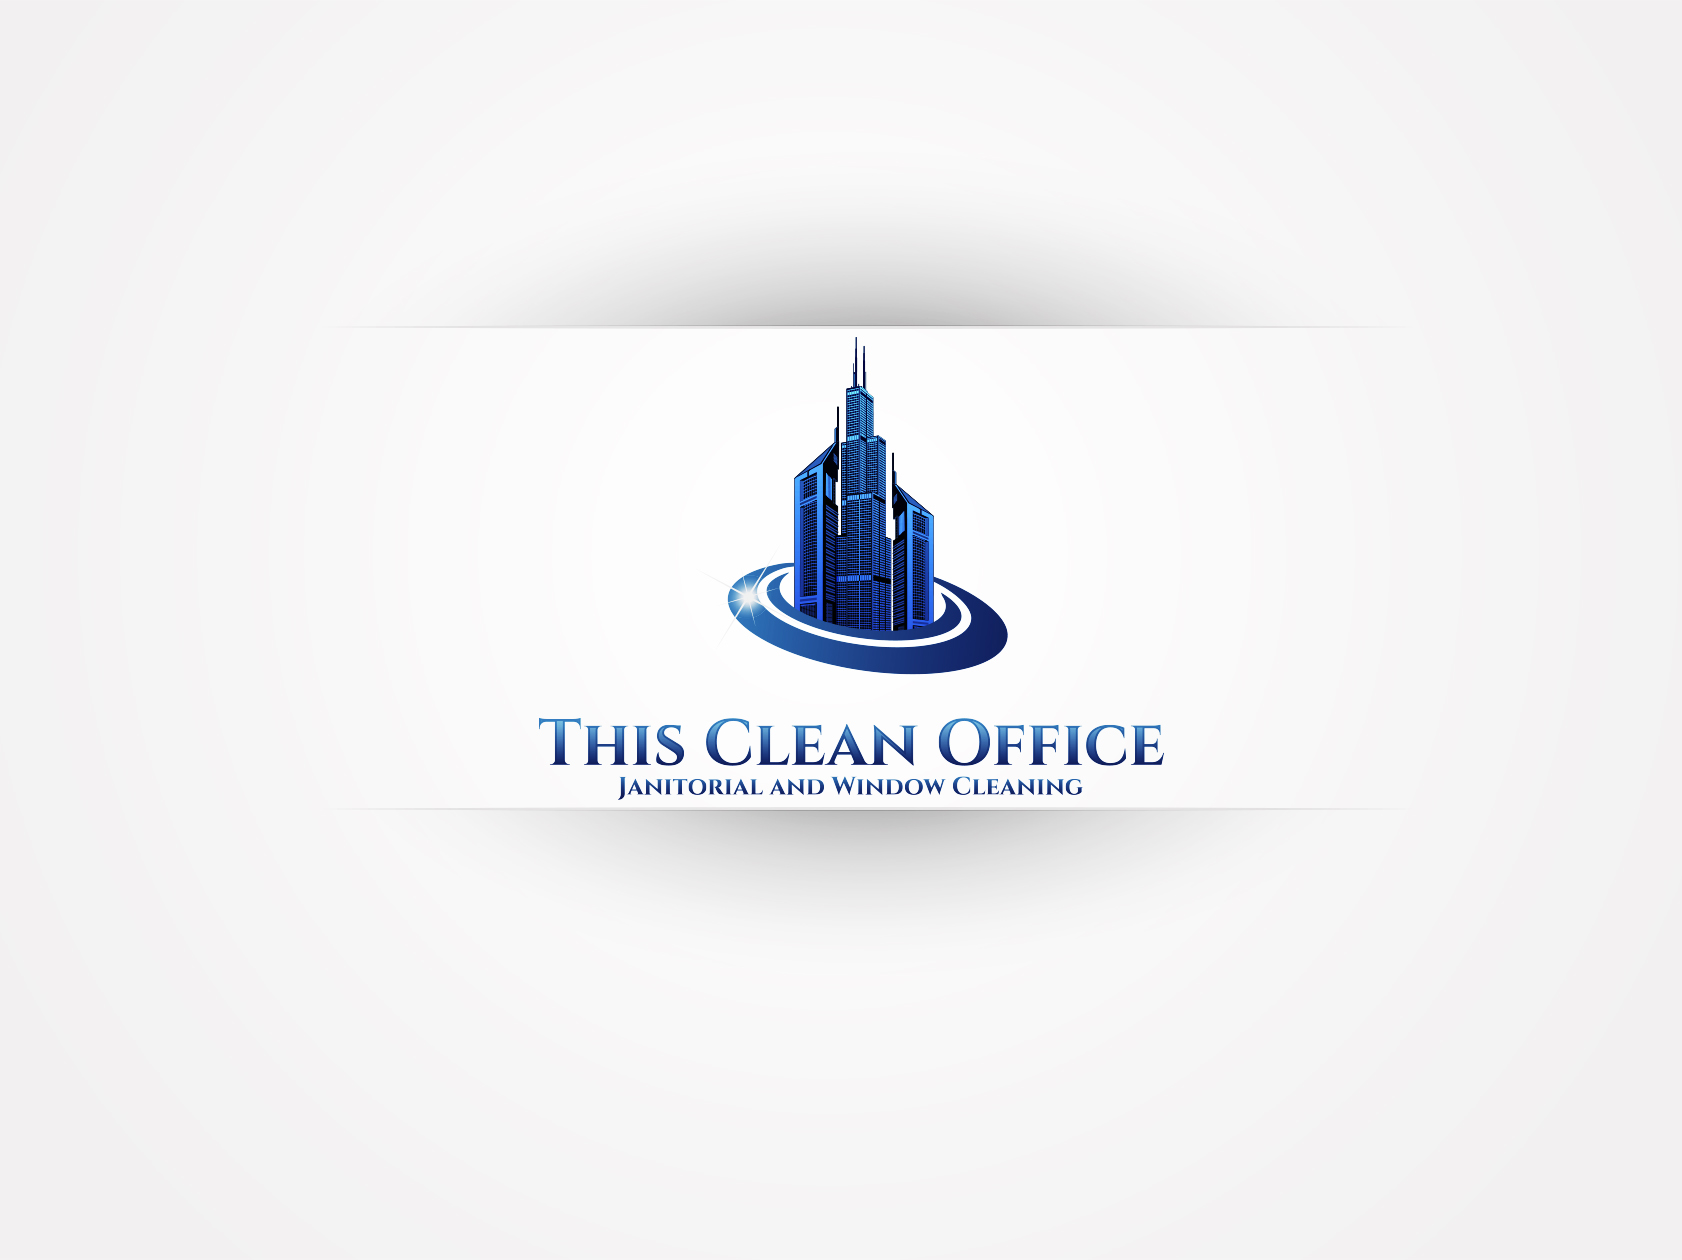 Logo Design by OmegaDesigns - Entry No. 64 in the Logo Design Contest Professional and Unforgettable Logo Design for This Clean Office.